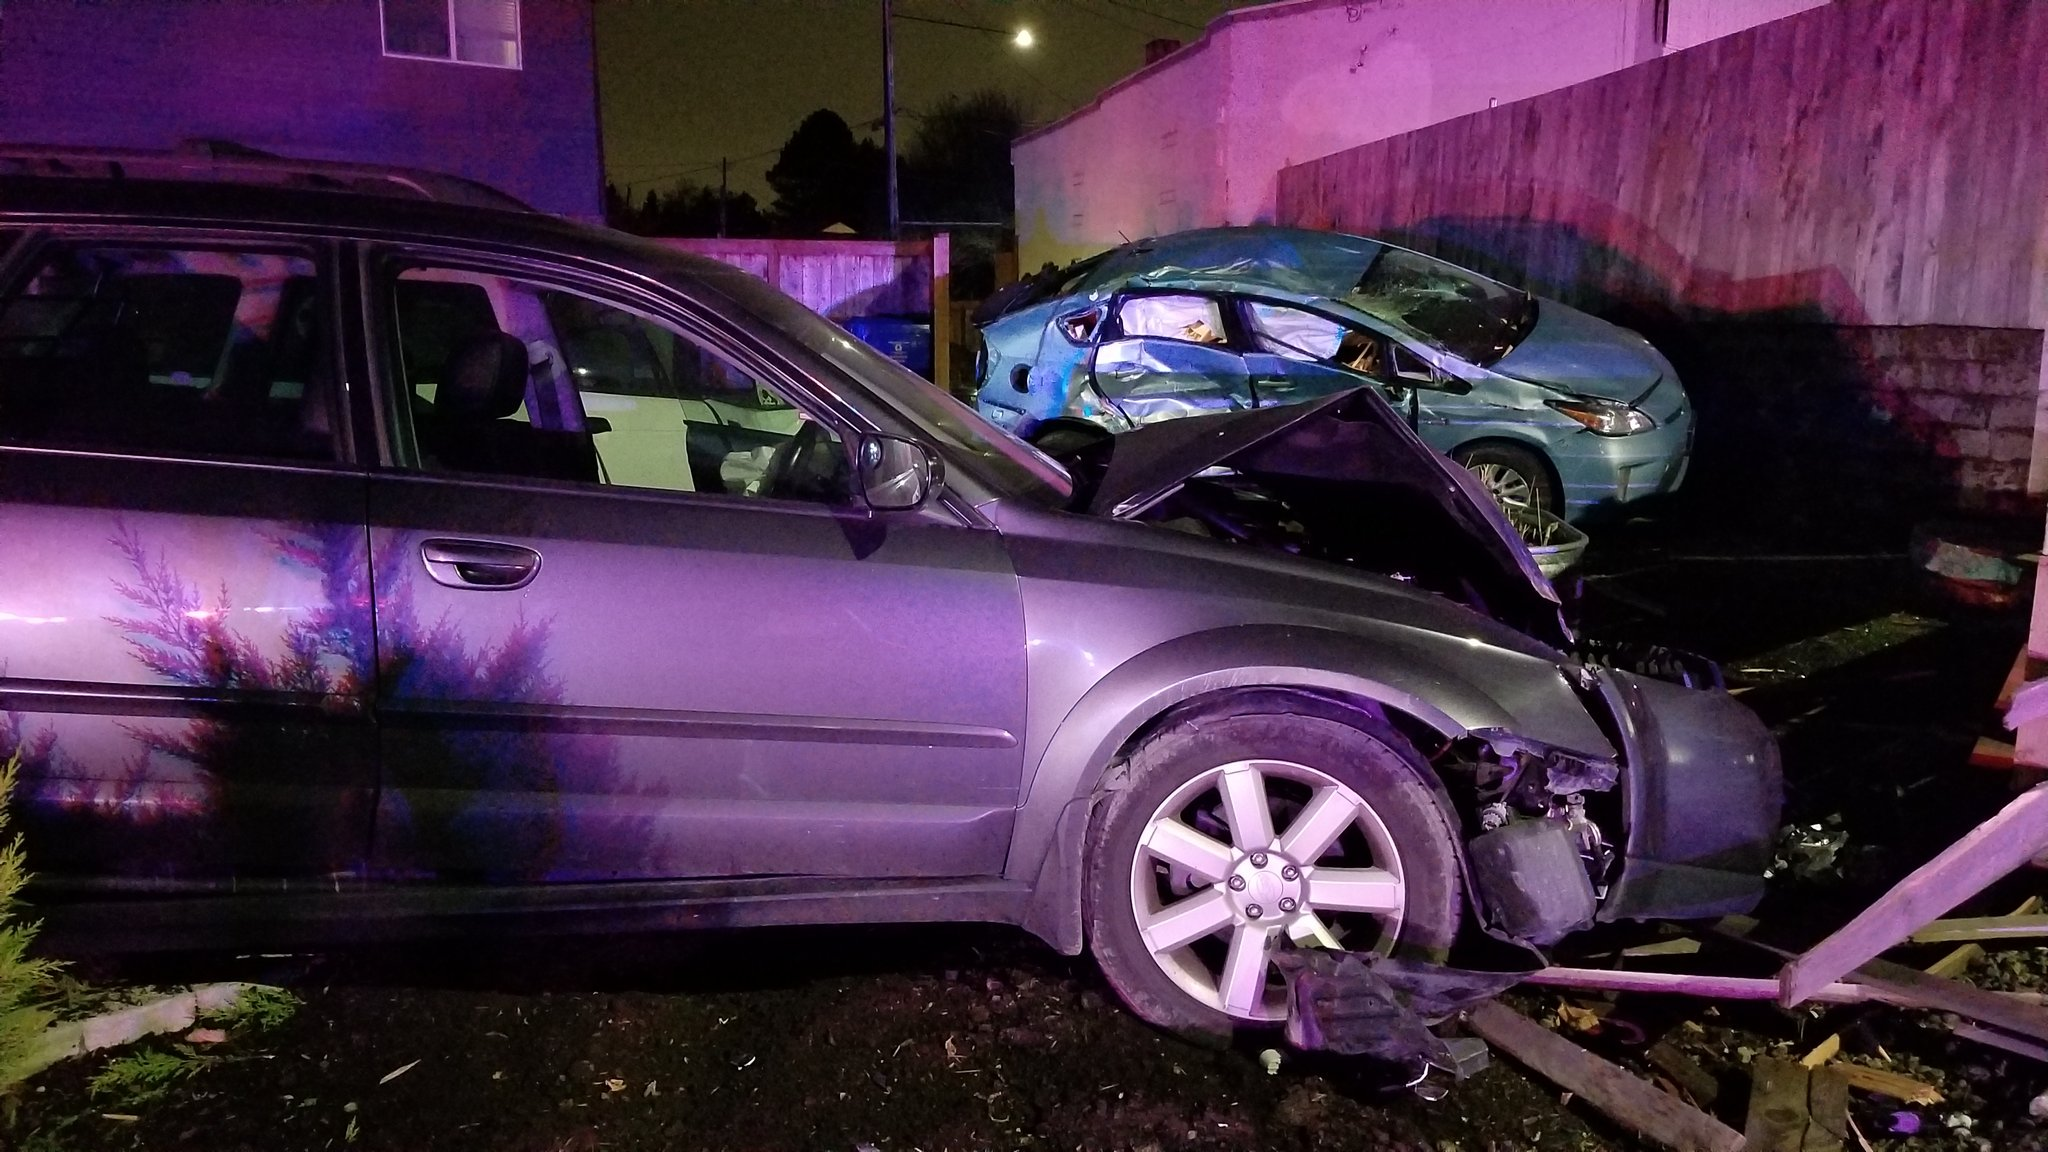 Police say a driver in a Subaru crashed into a Toyota Prius in Southeast Portland on Dec. 18, 2017. Photo courtesy Portland Police Bureau